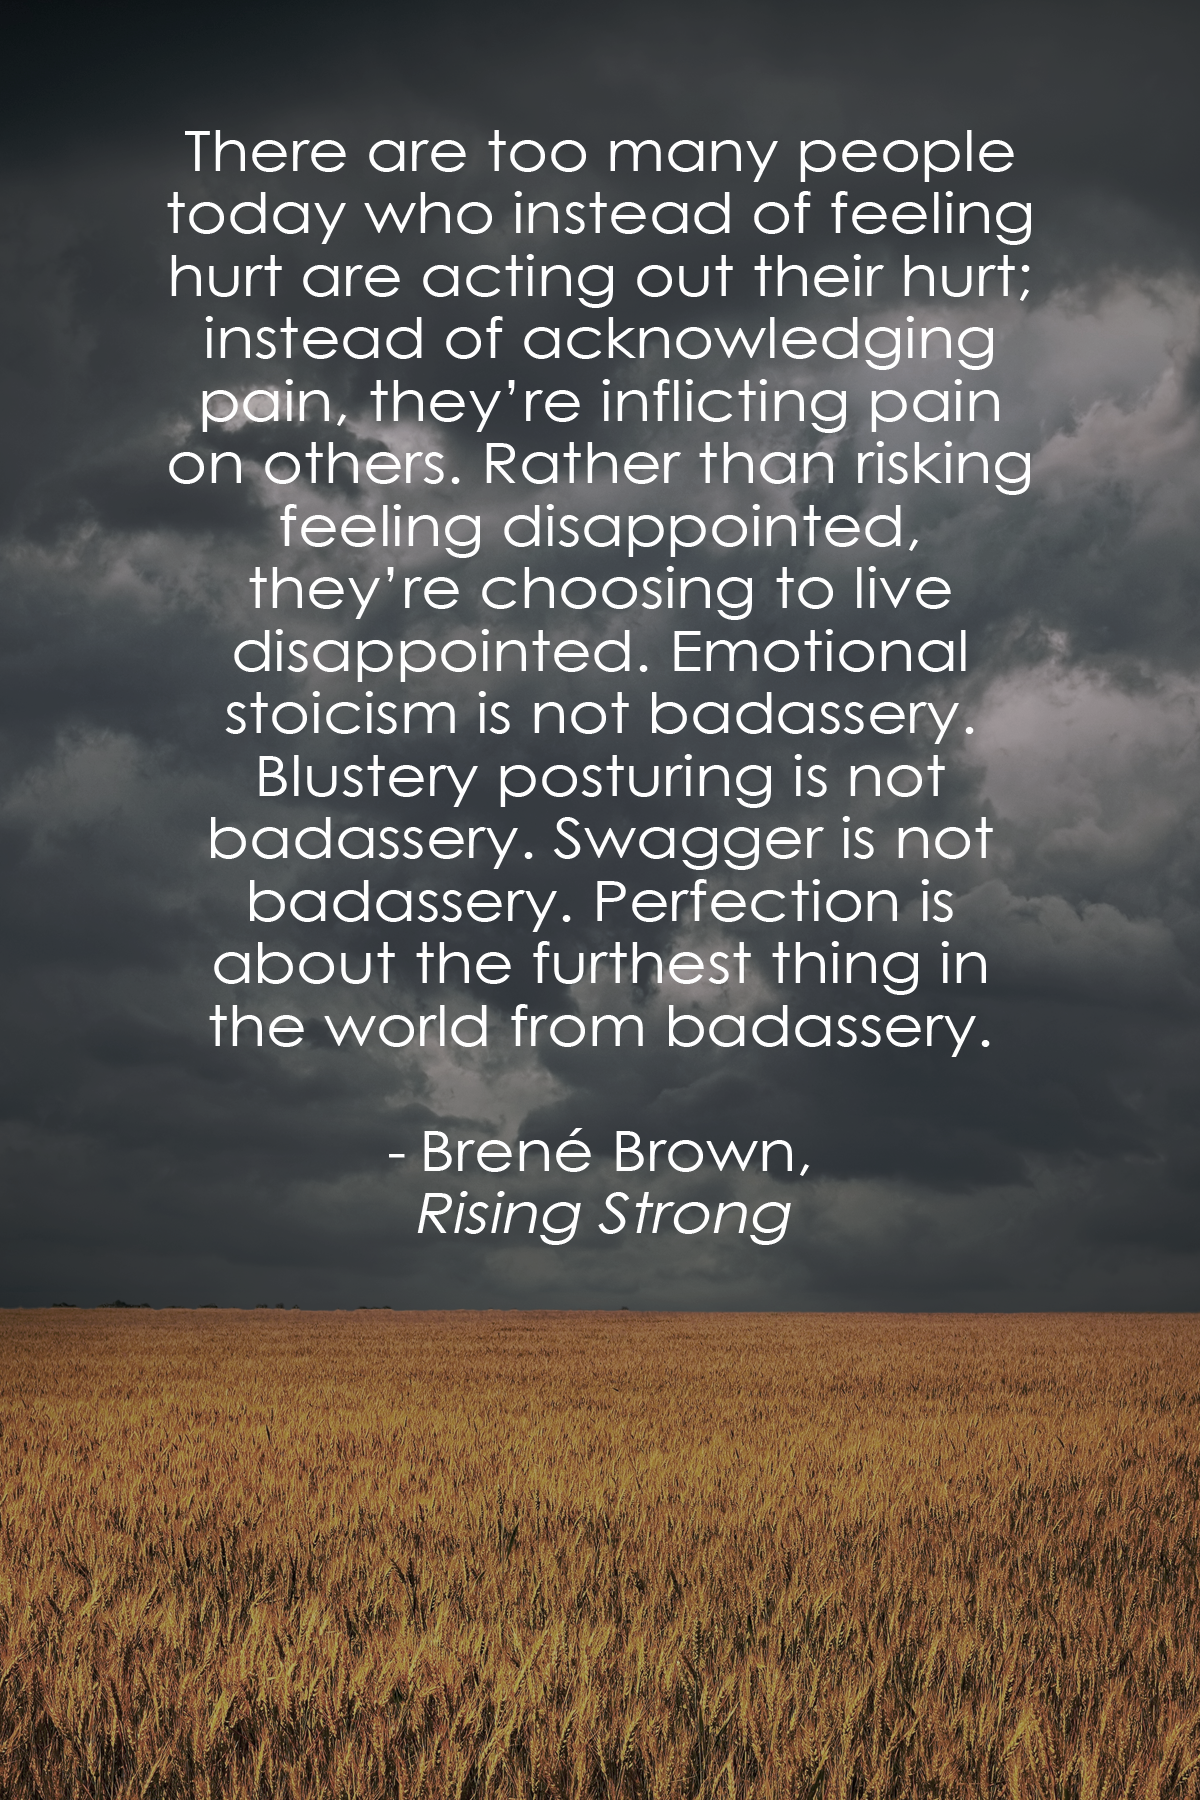 Rising Strong by Brené Brown Inspirational Quotes